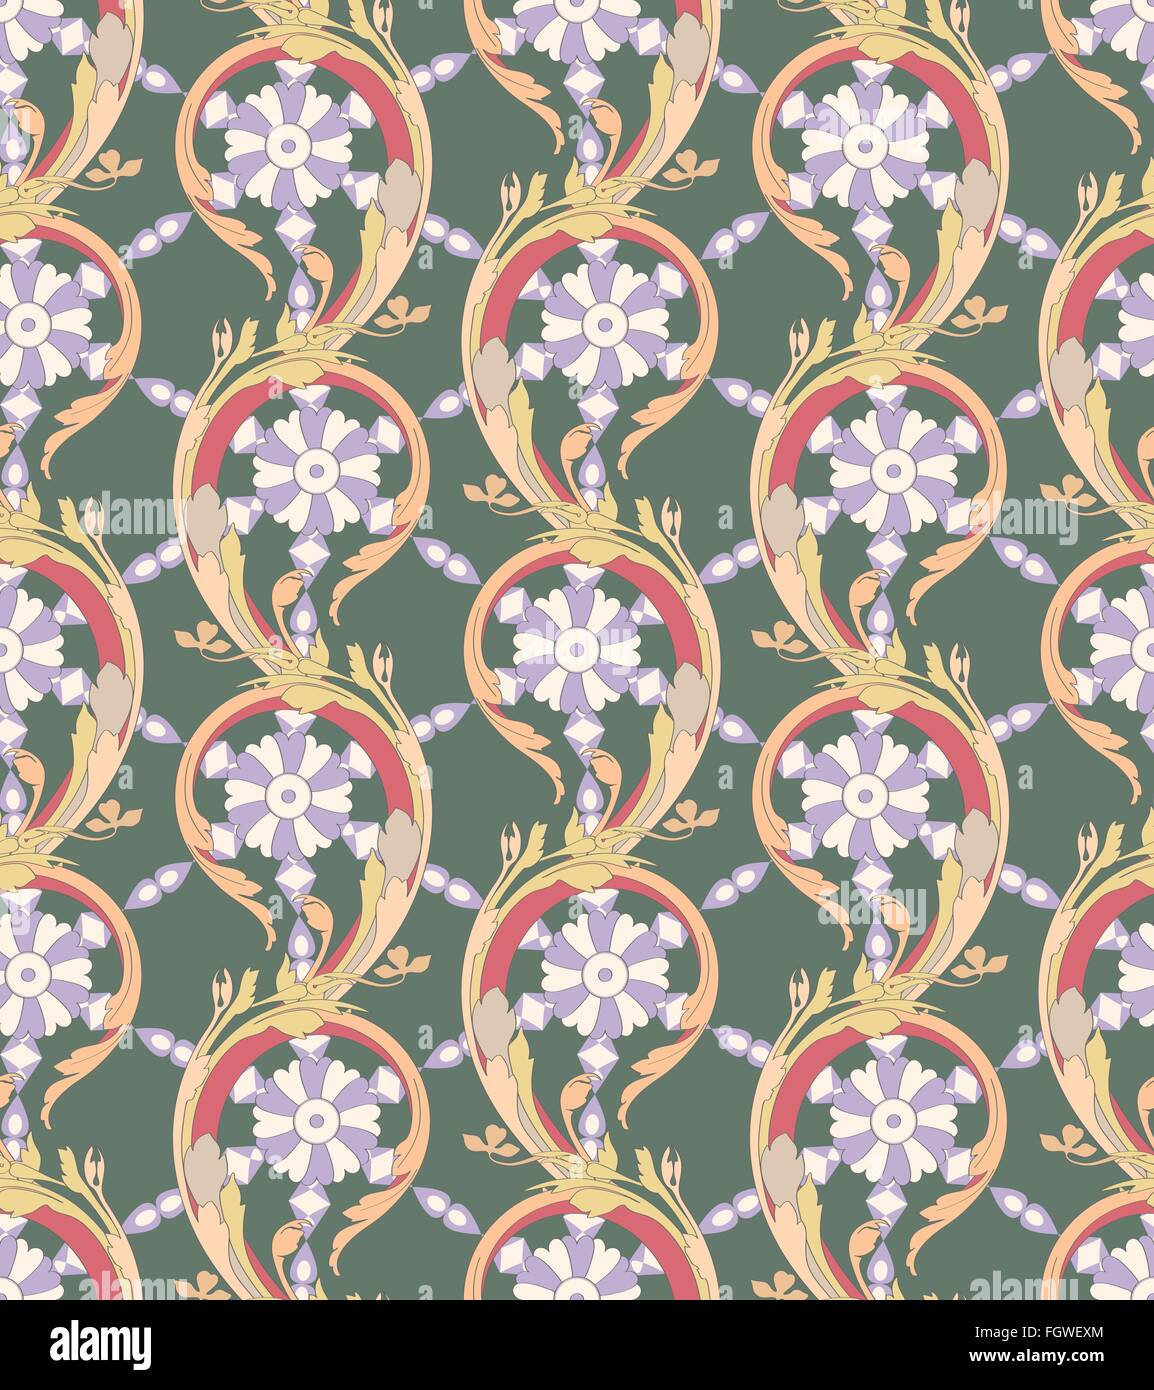 Acanthus leaves - seamless pattern - Stock Image